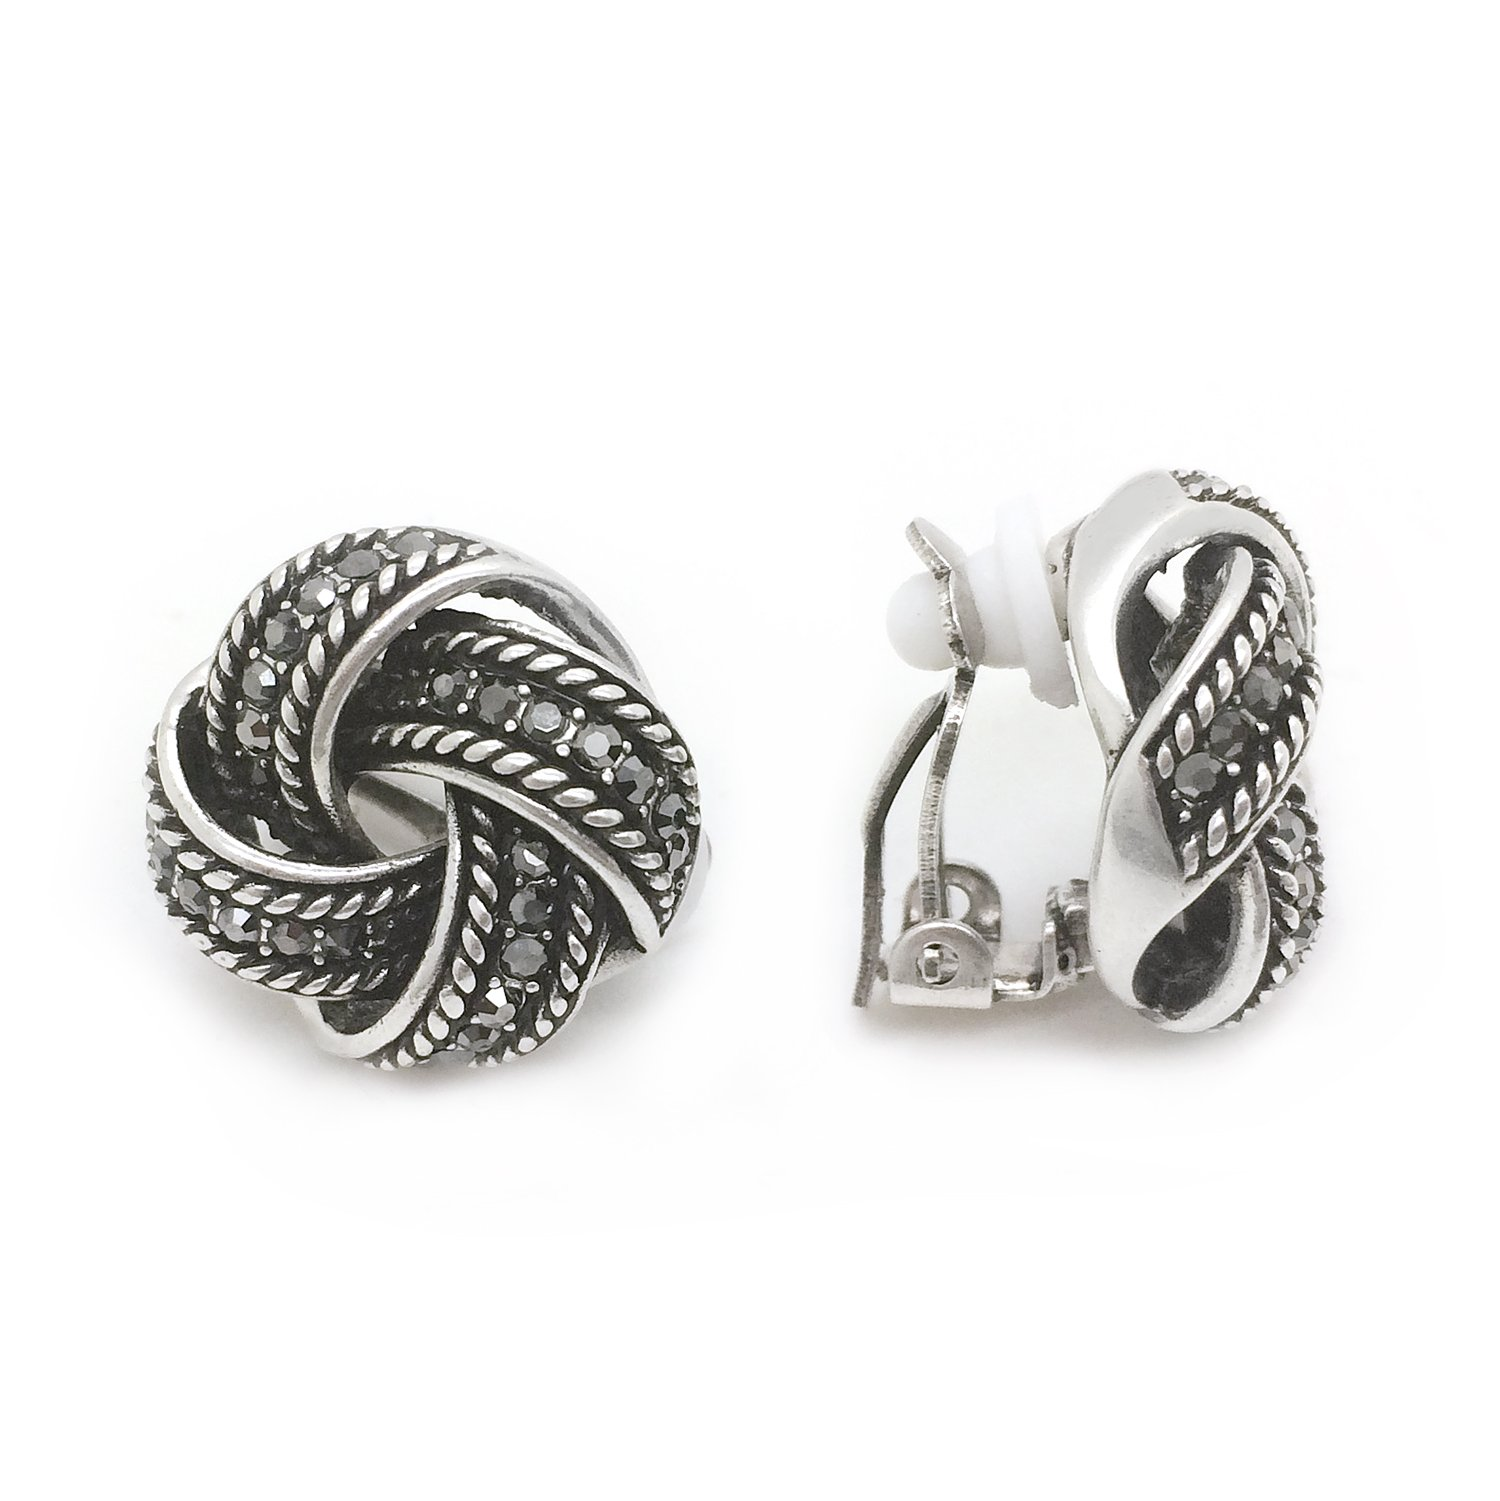 Clip On Earrings Love Knot Black Crystal Antique Braided Women Fashion